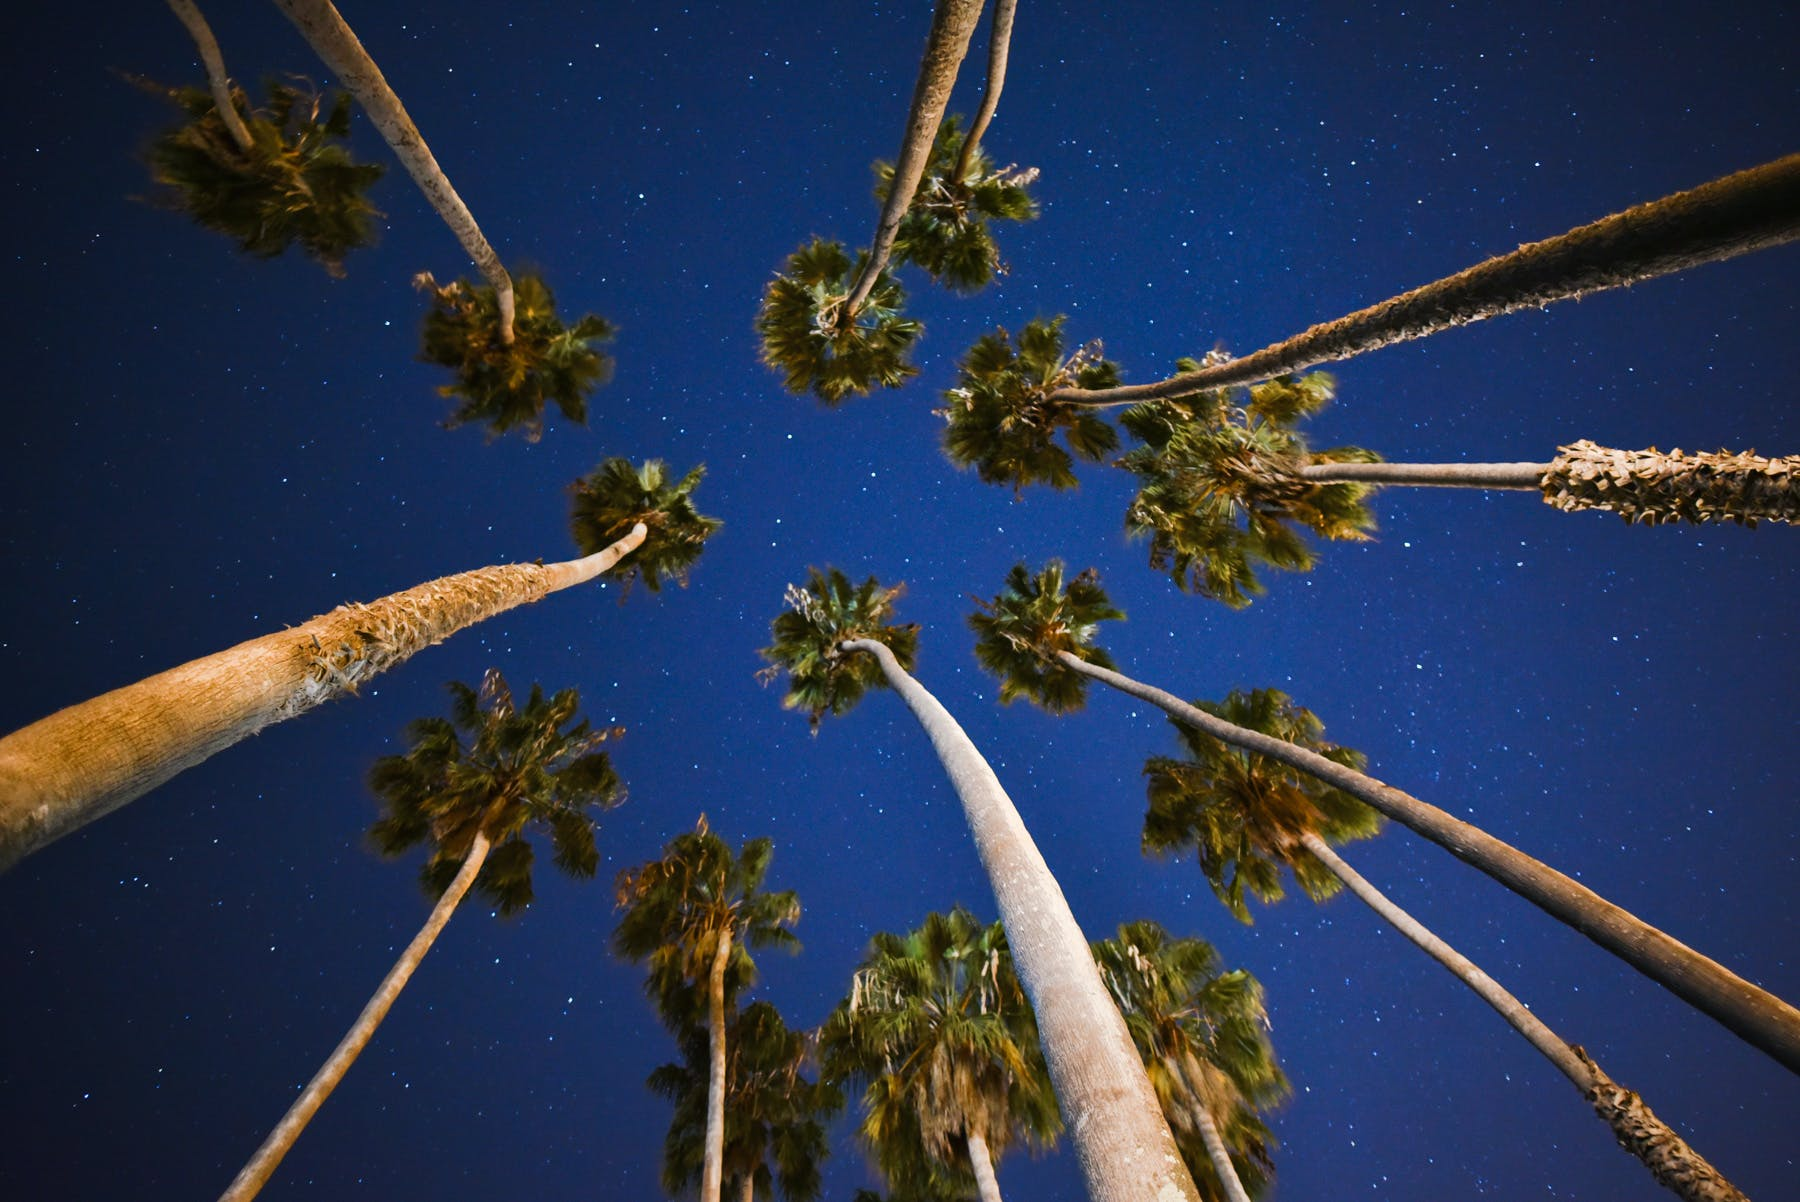 Palm Trees Under Blue Skies With Stars at Nigh Time